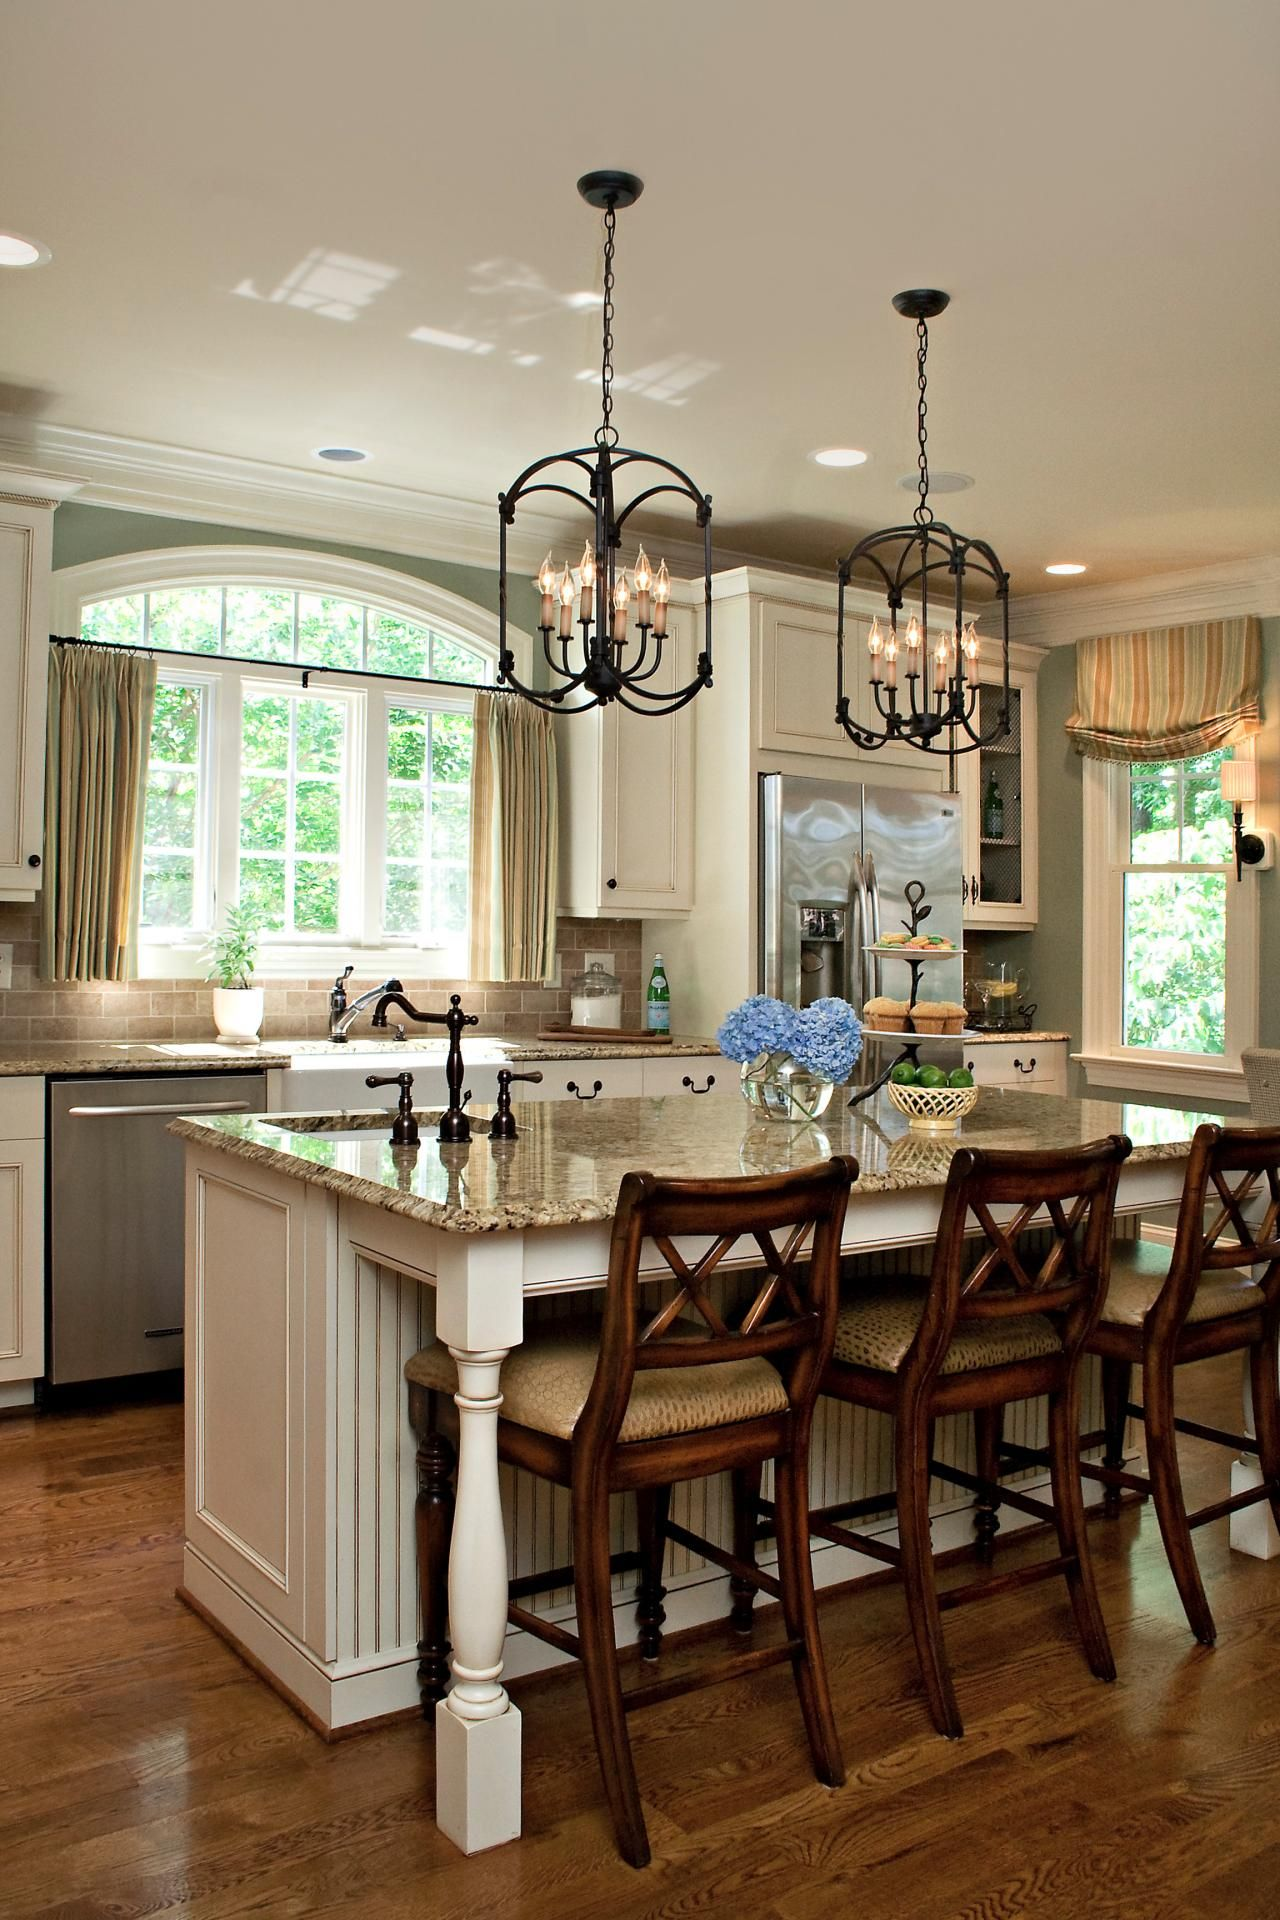 Stunning Lantern Style Pendants Hang Above A Large Island In